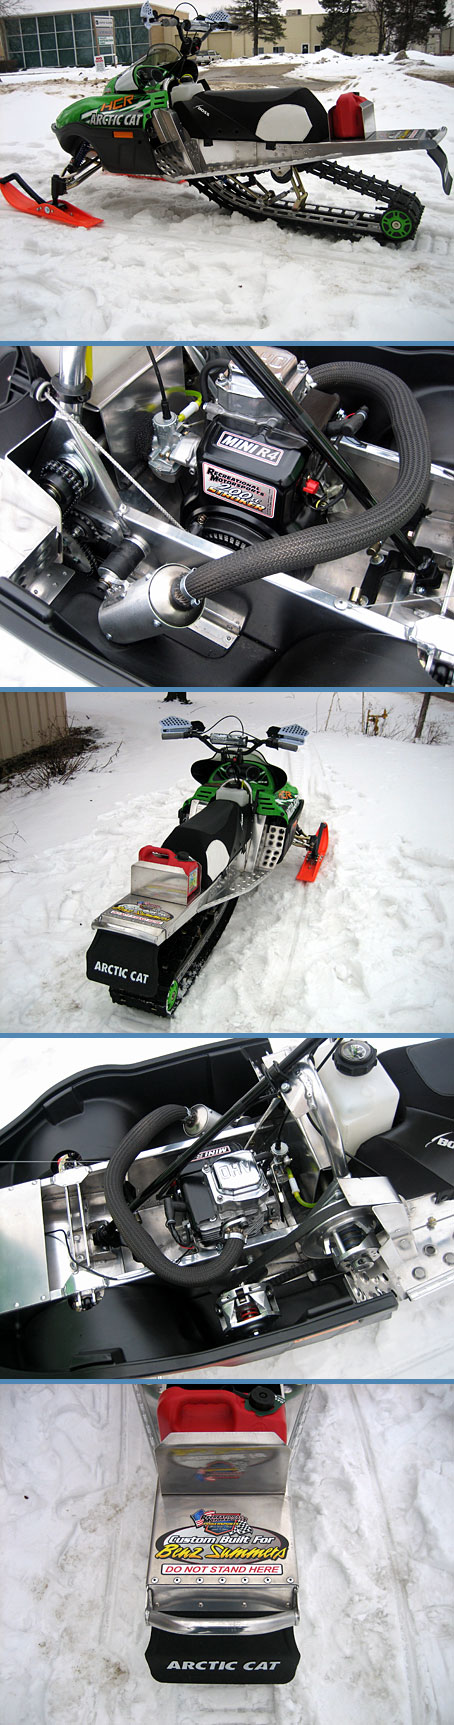 CUSTOM BUILT MOUNTAIN SLED